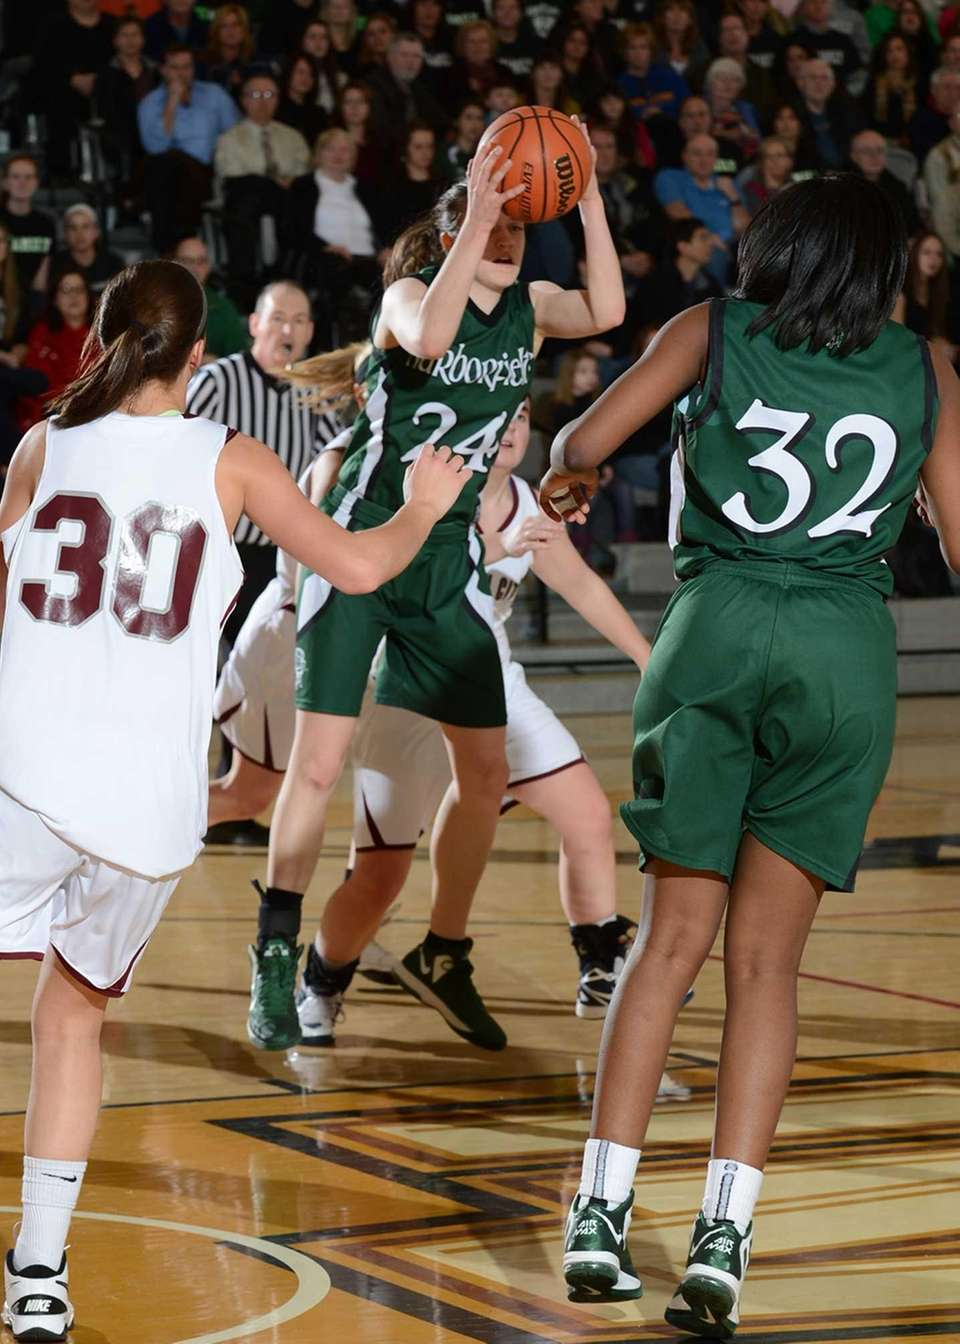 Harborfield's Bridget Ryan (24) gets the rebound during